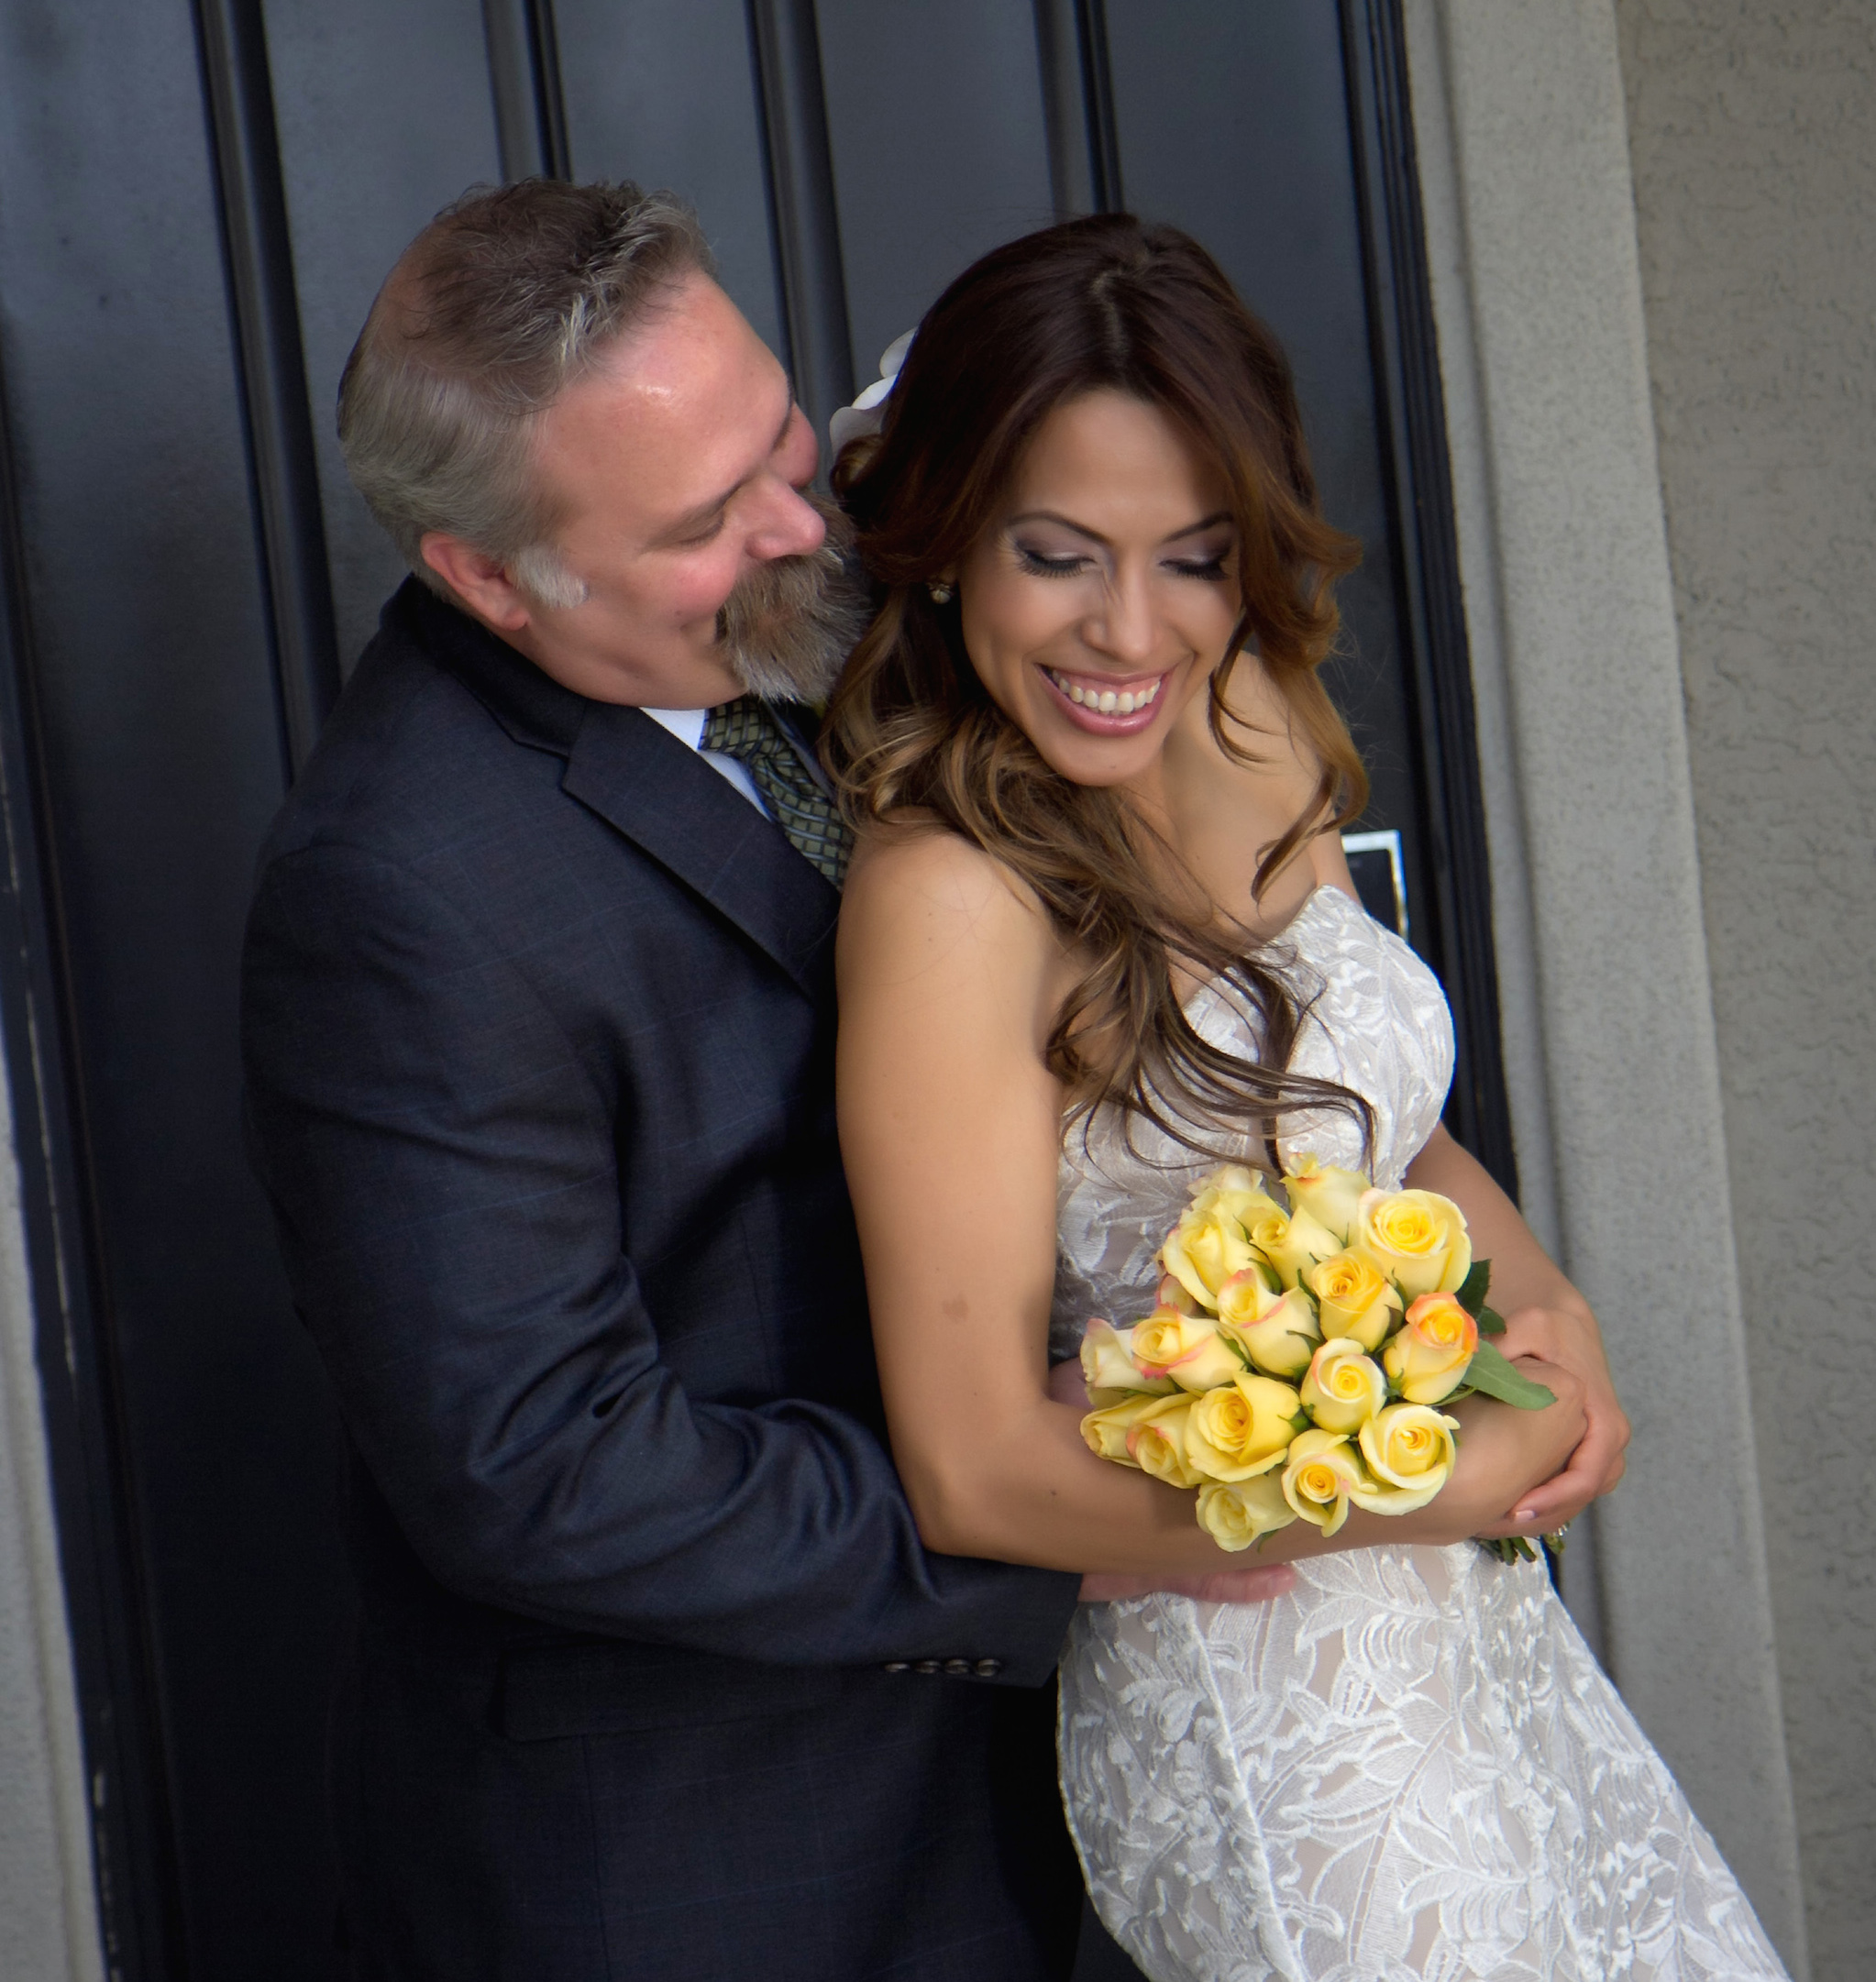 Marcella Photography Captures a Fairytale Wedding for Las Vegas Couple Esbaider & Steven